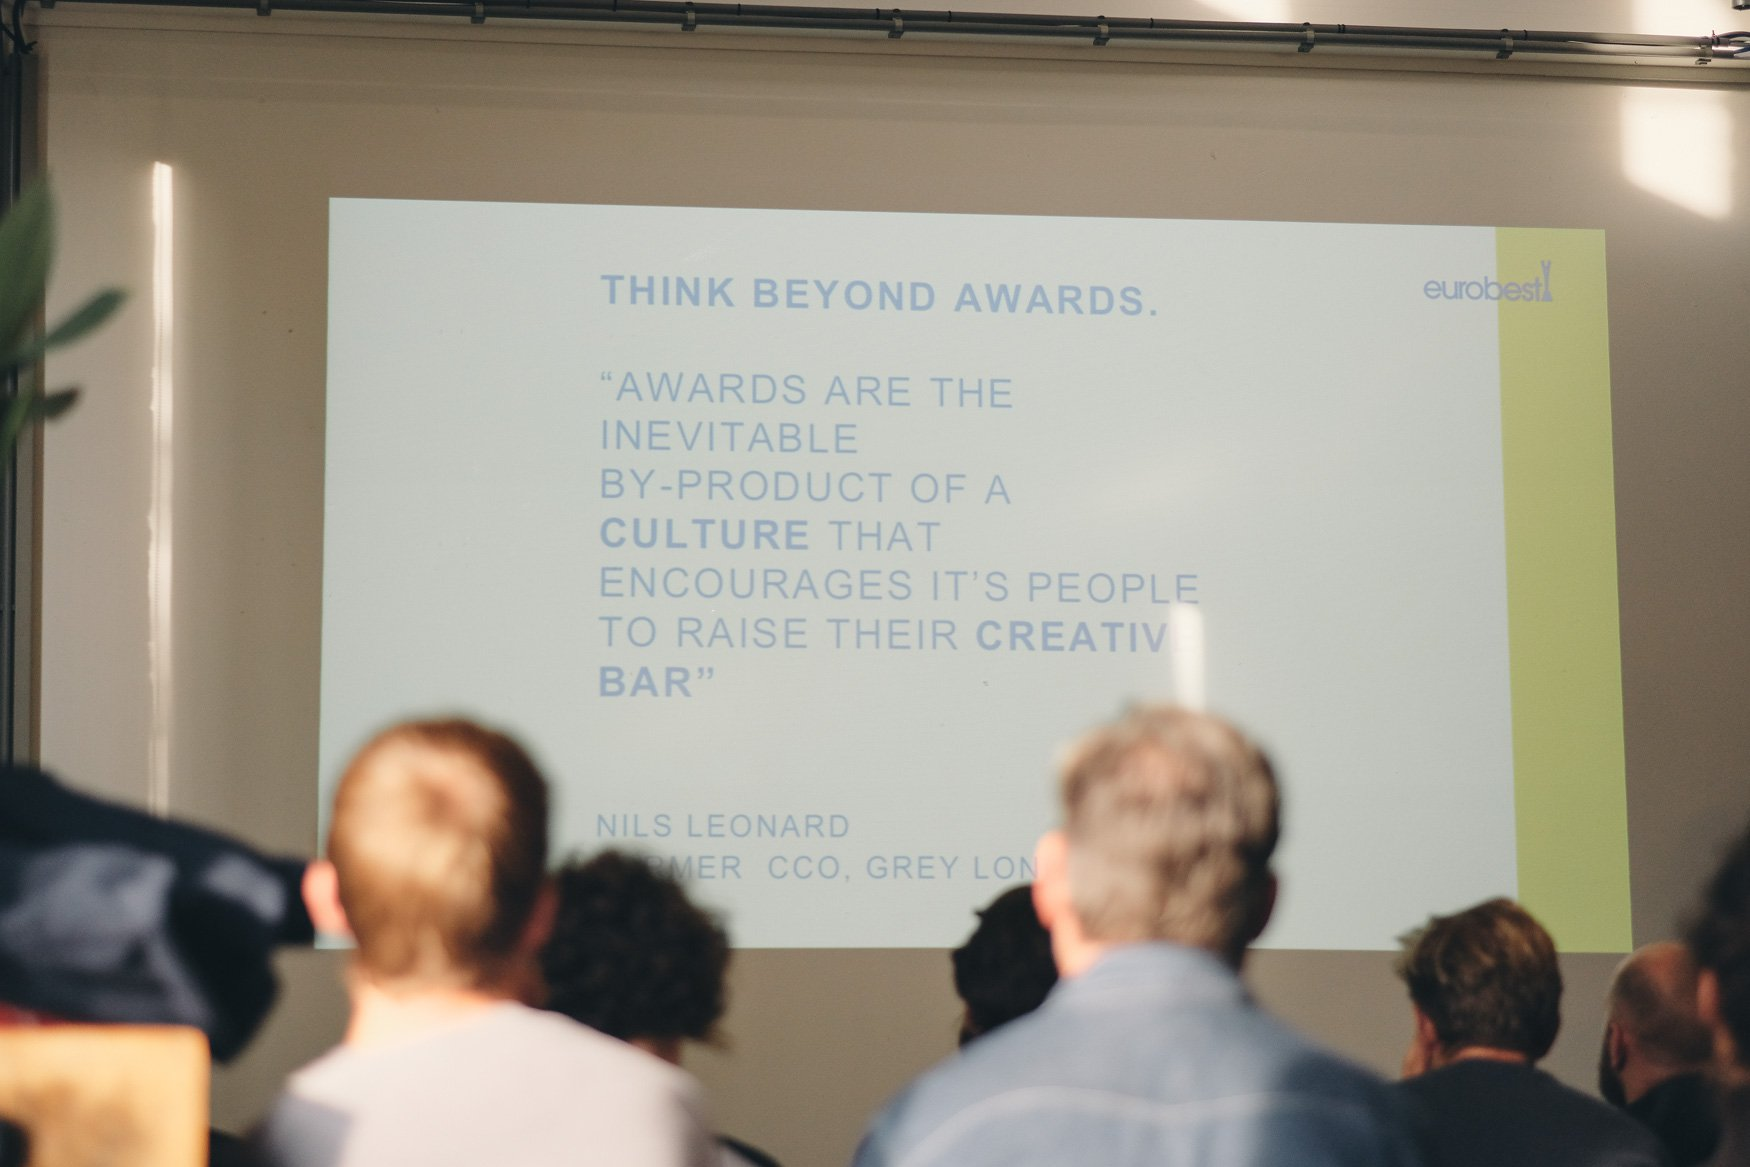 think beyond awards